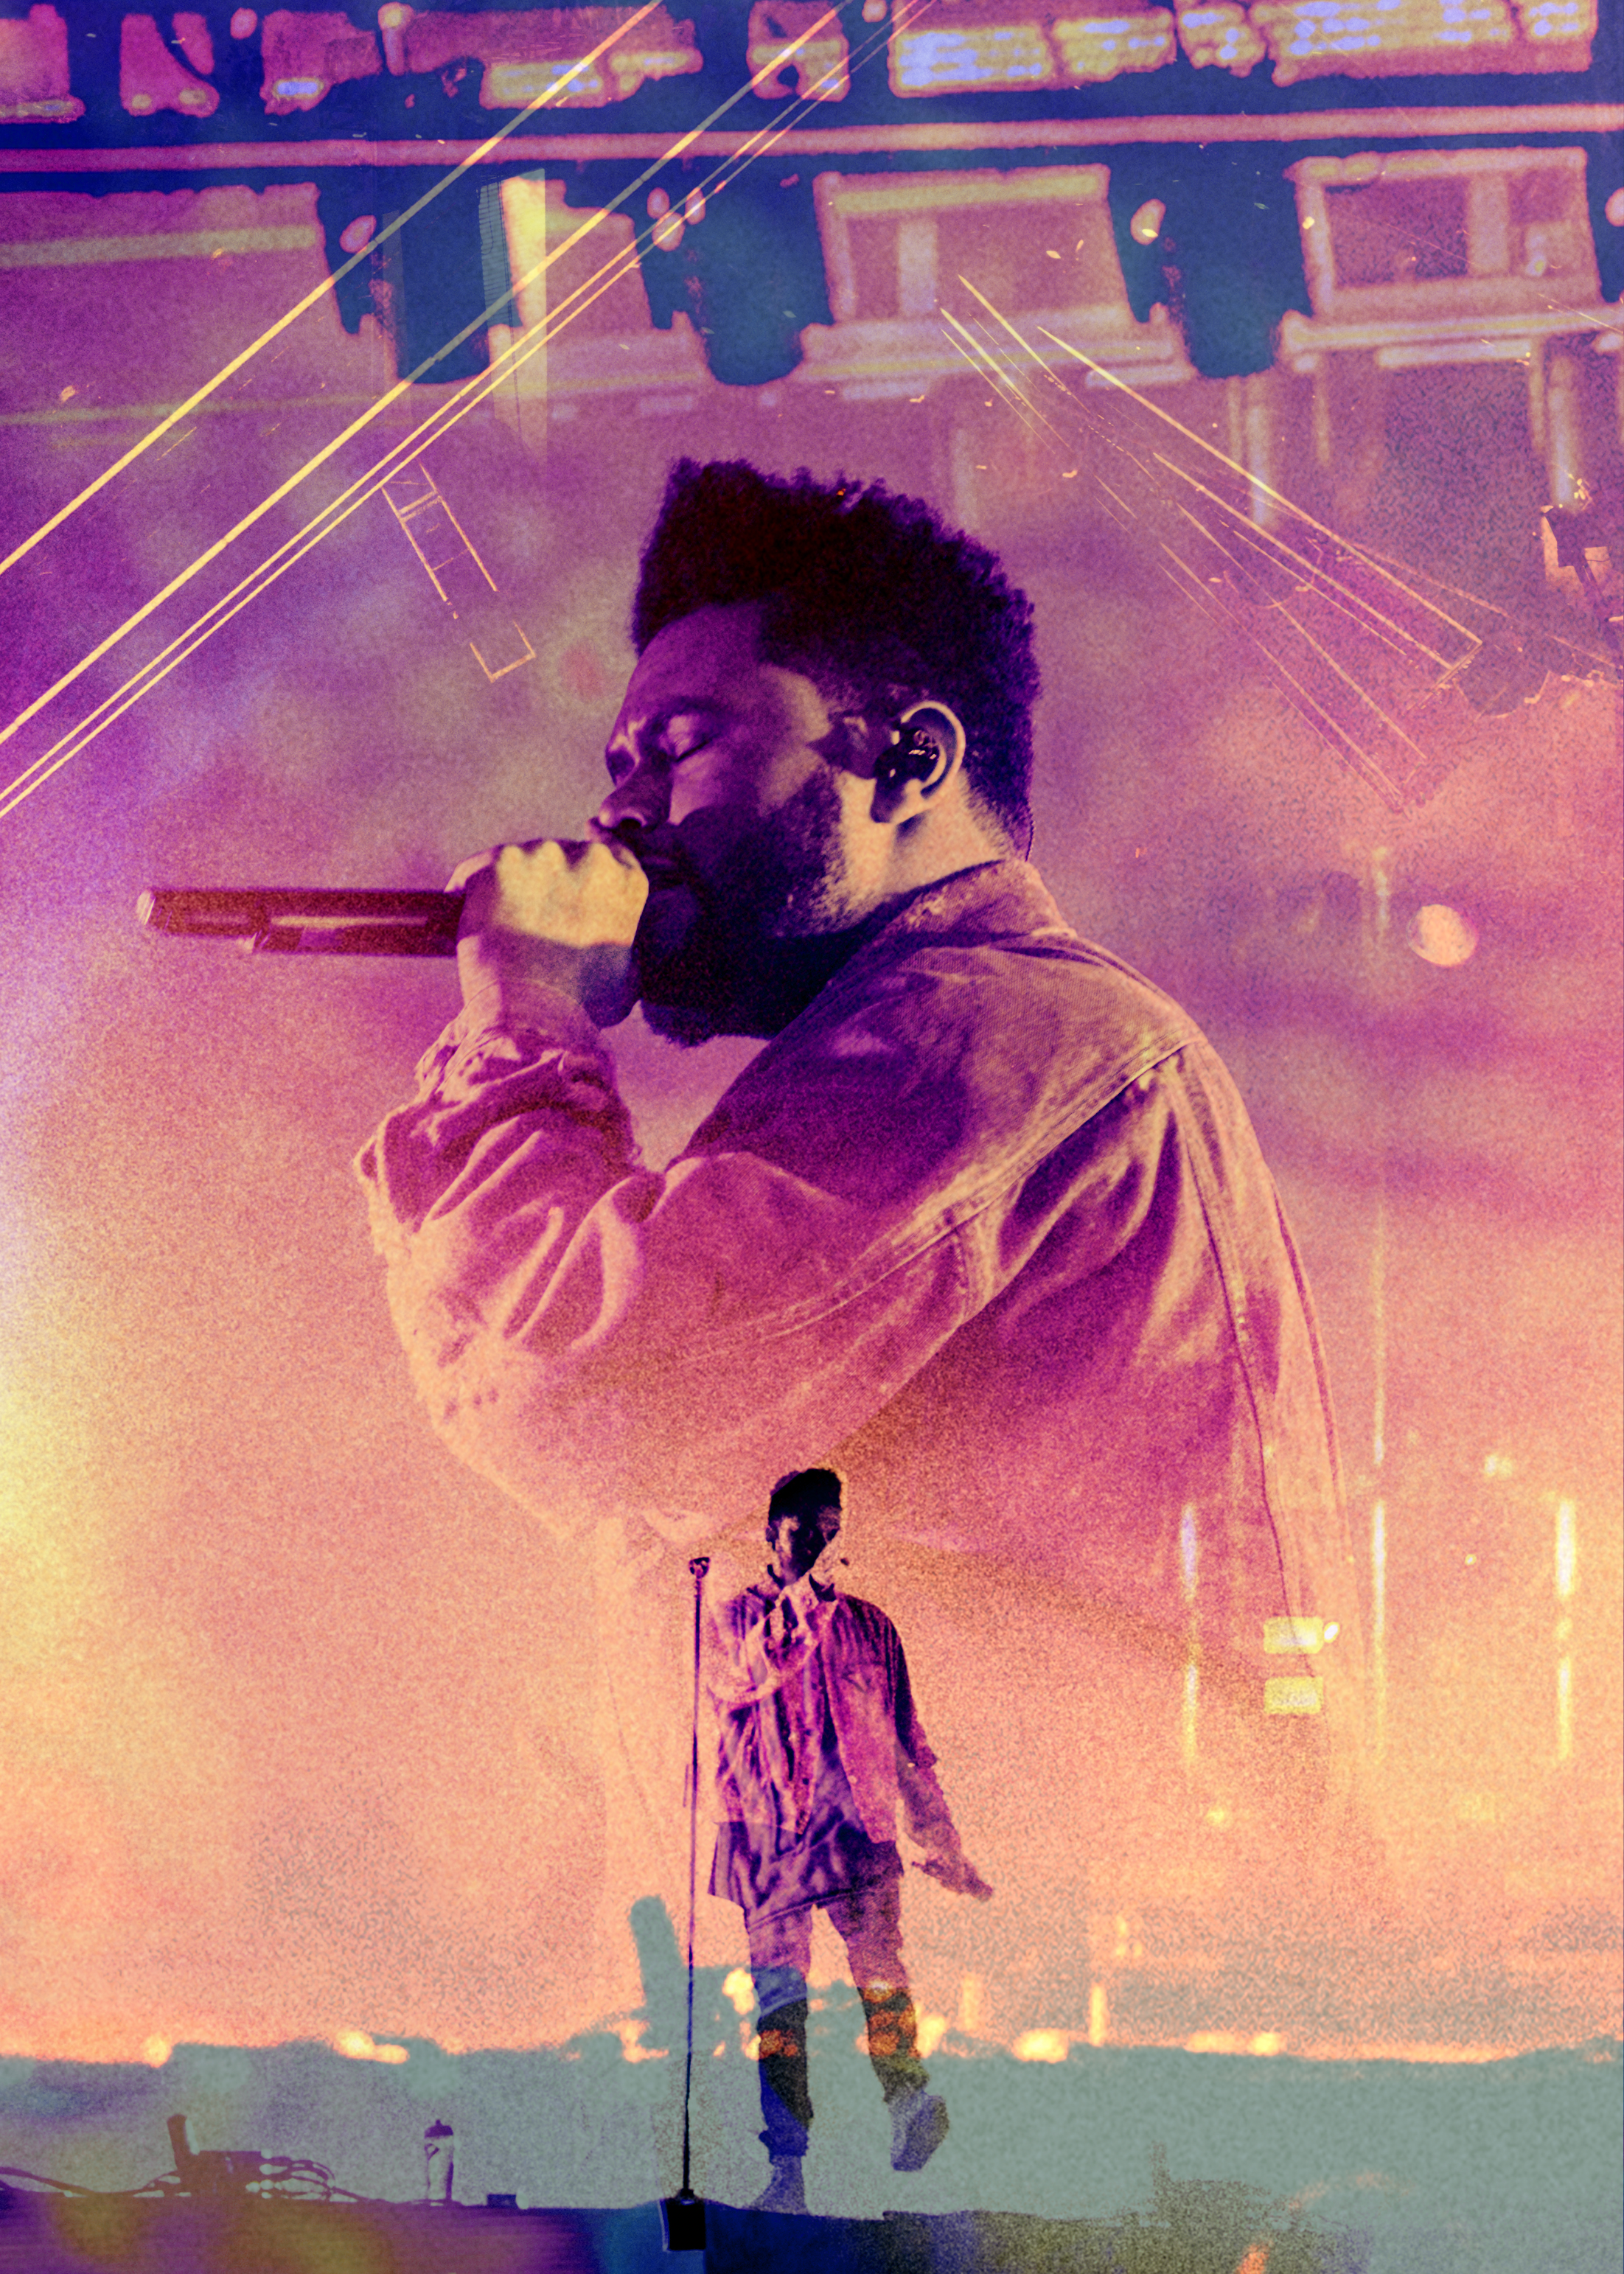 The Weeknd Collage 4.jpg